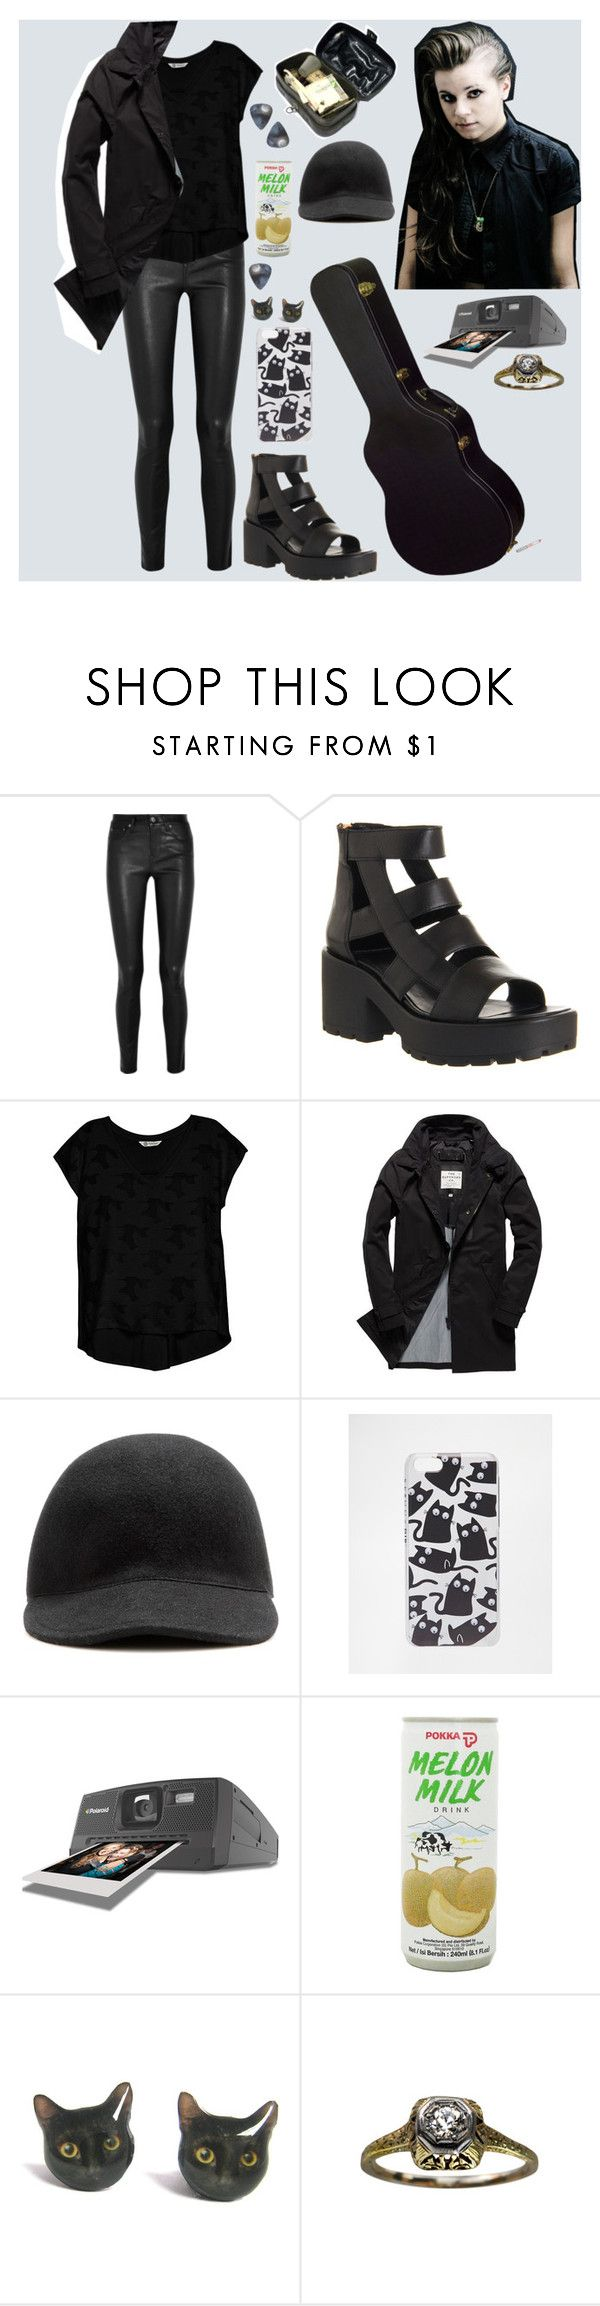 """stand tall"" by pvriscvlt ❤ liked on Polyvore featuring Helmut Lang, Vagabond, Bobeau, Superdry, STELLA McCARTNEY, Skinnydip, Polaroid, imagine, Heels and jacket"